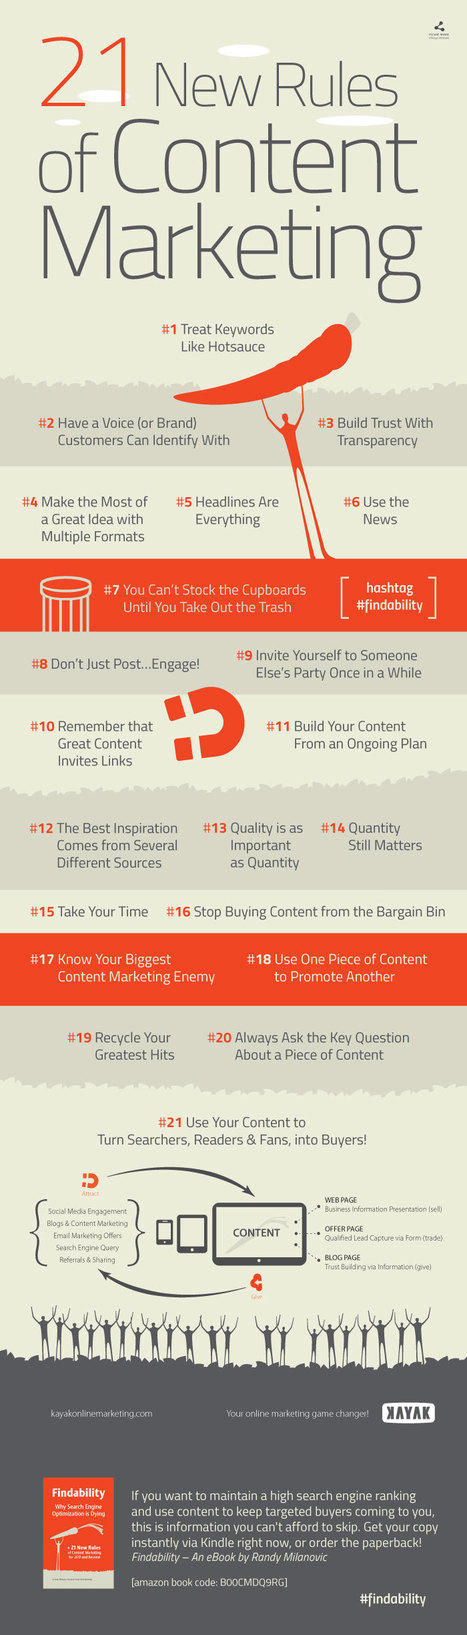 The 21 New Rules of Content Marketing [INFOGRAPHIC] | Social Media Specialist JLS | Scoop.it